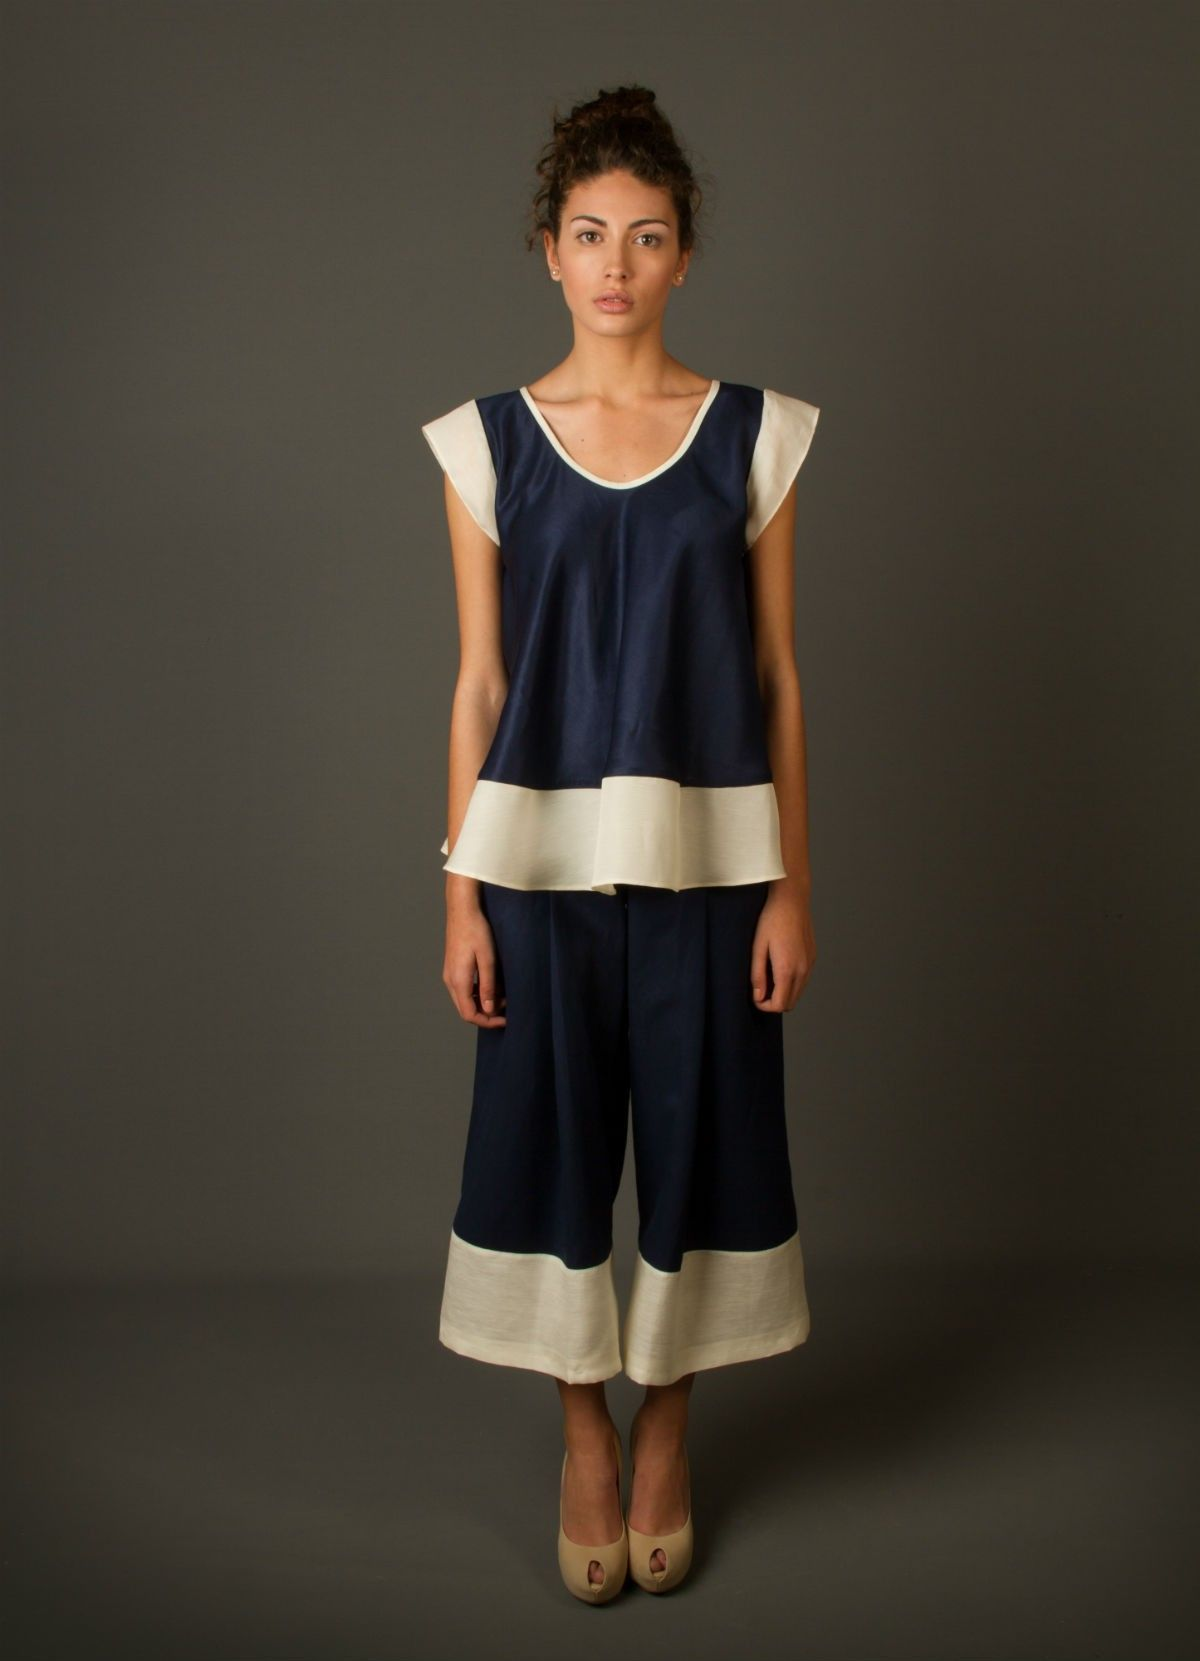 Women Suit ASTER - Top and Pants, Made in Spain --  https://cockyfashion.com/women/suits/desiner-suit-aster-top-and-pants.html